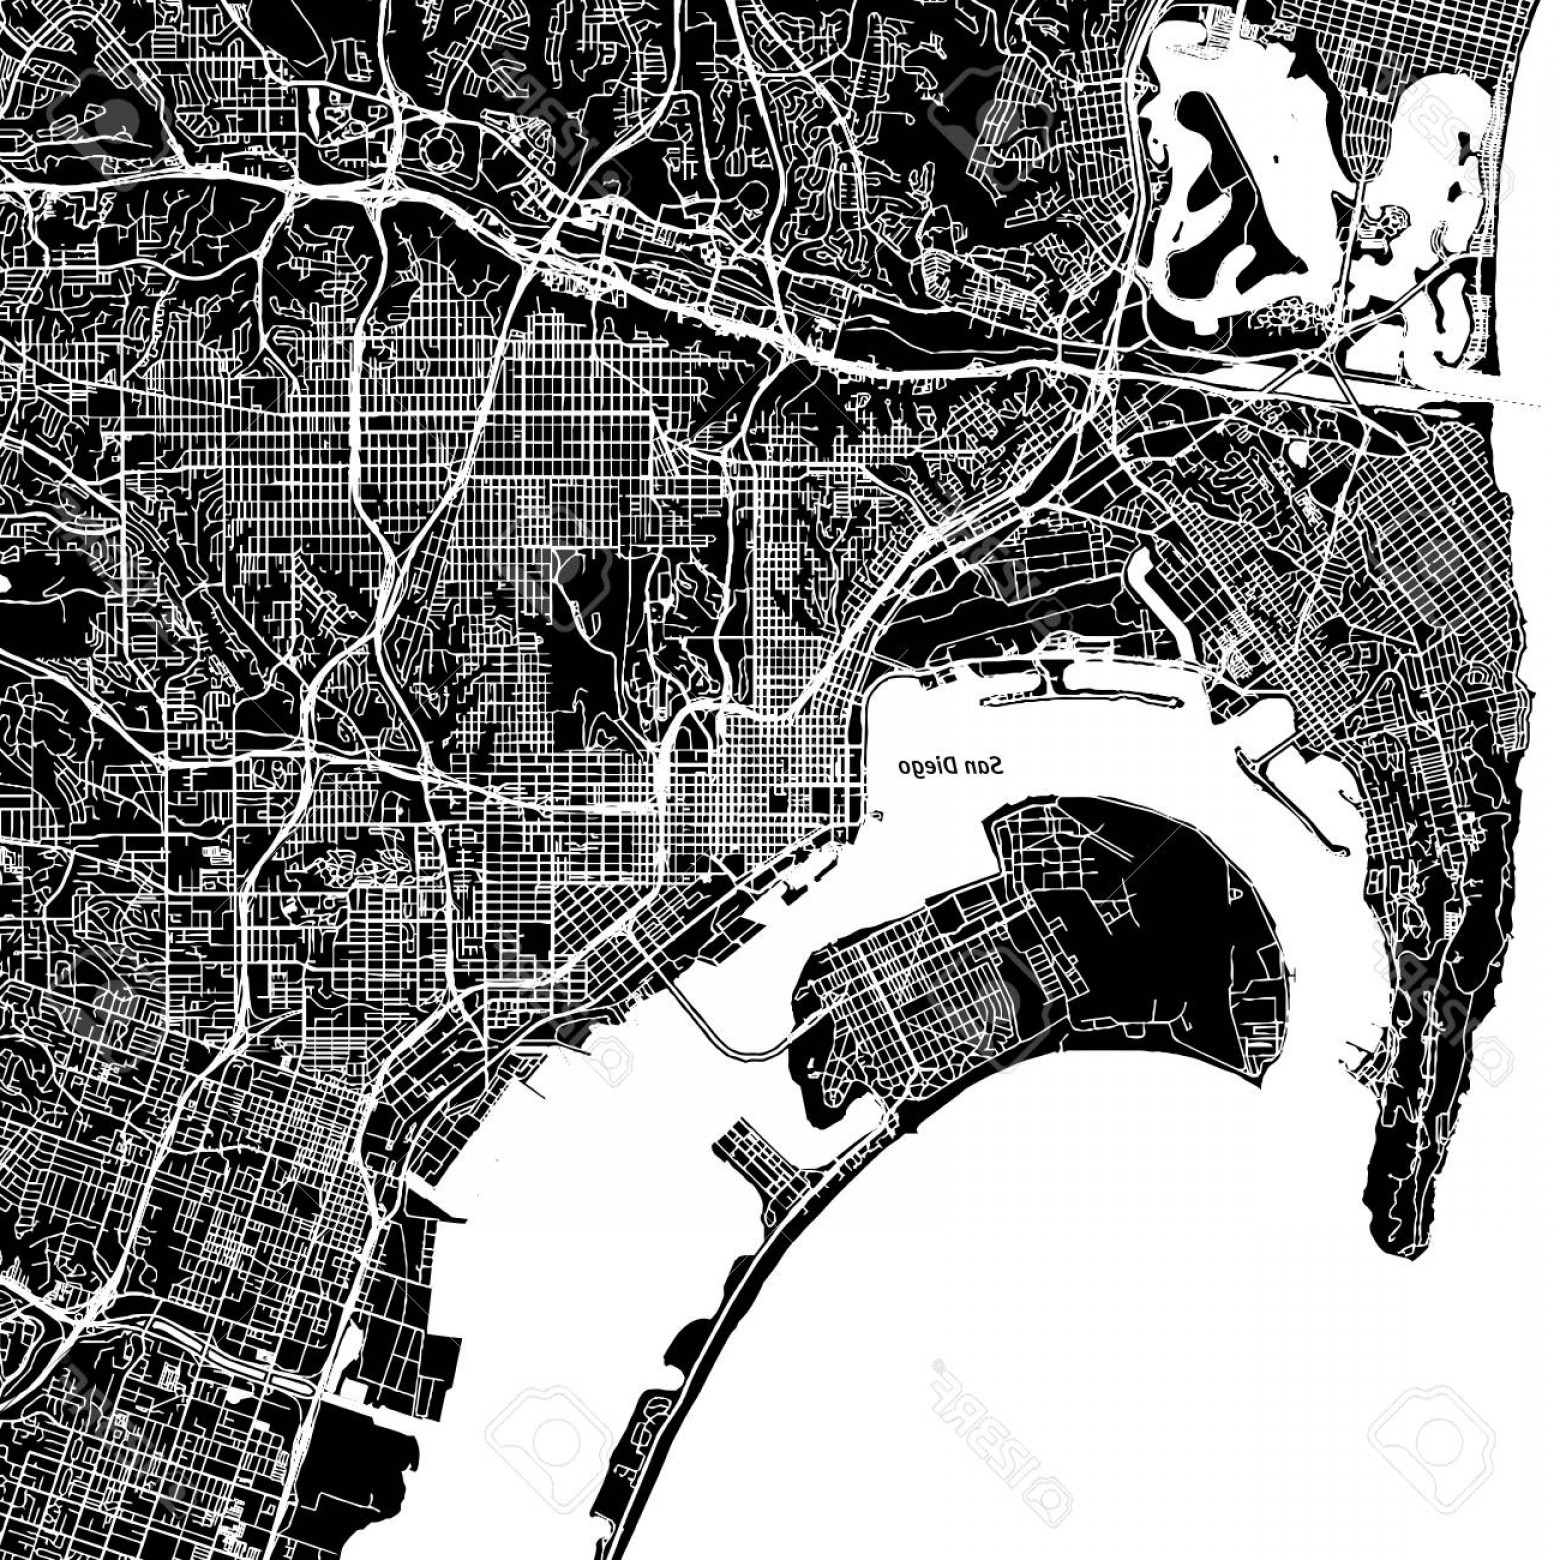 California Black And White Vector: Photostock Vector San Diego California Downtown Vector Map City Name On A Separate Layer Art Print Template Black And